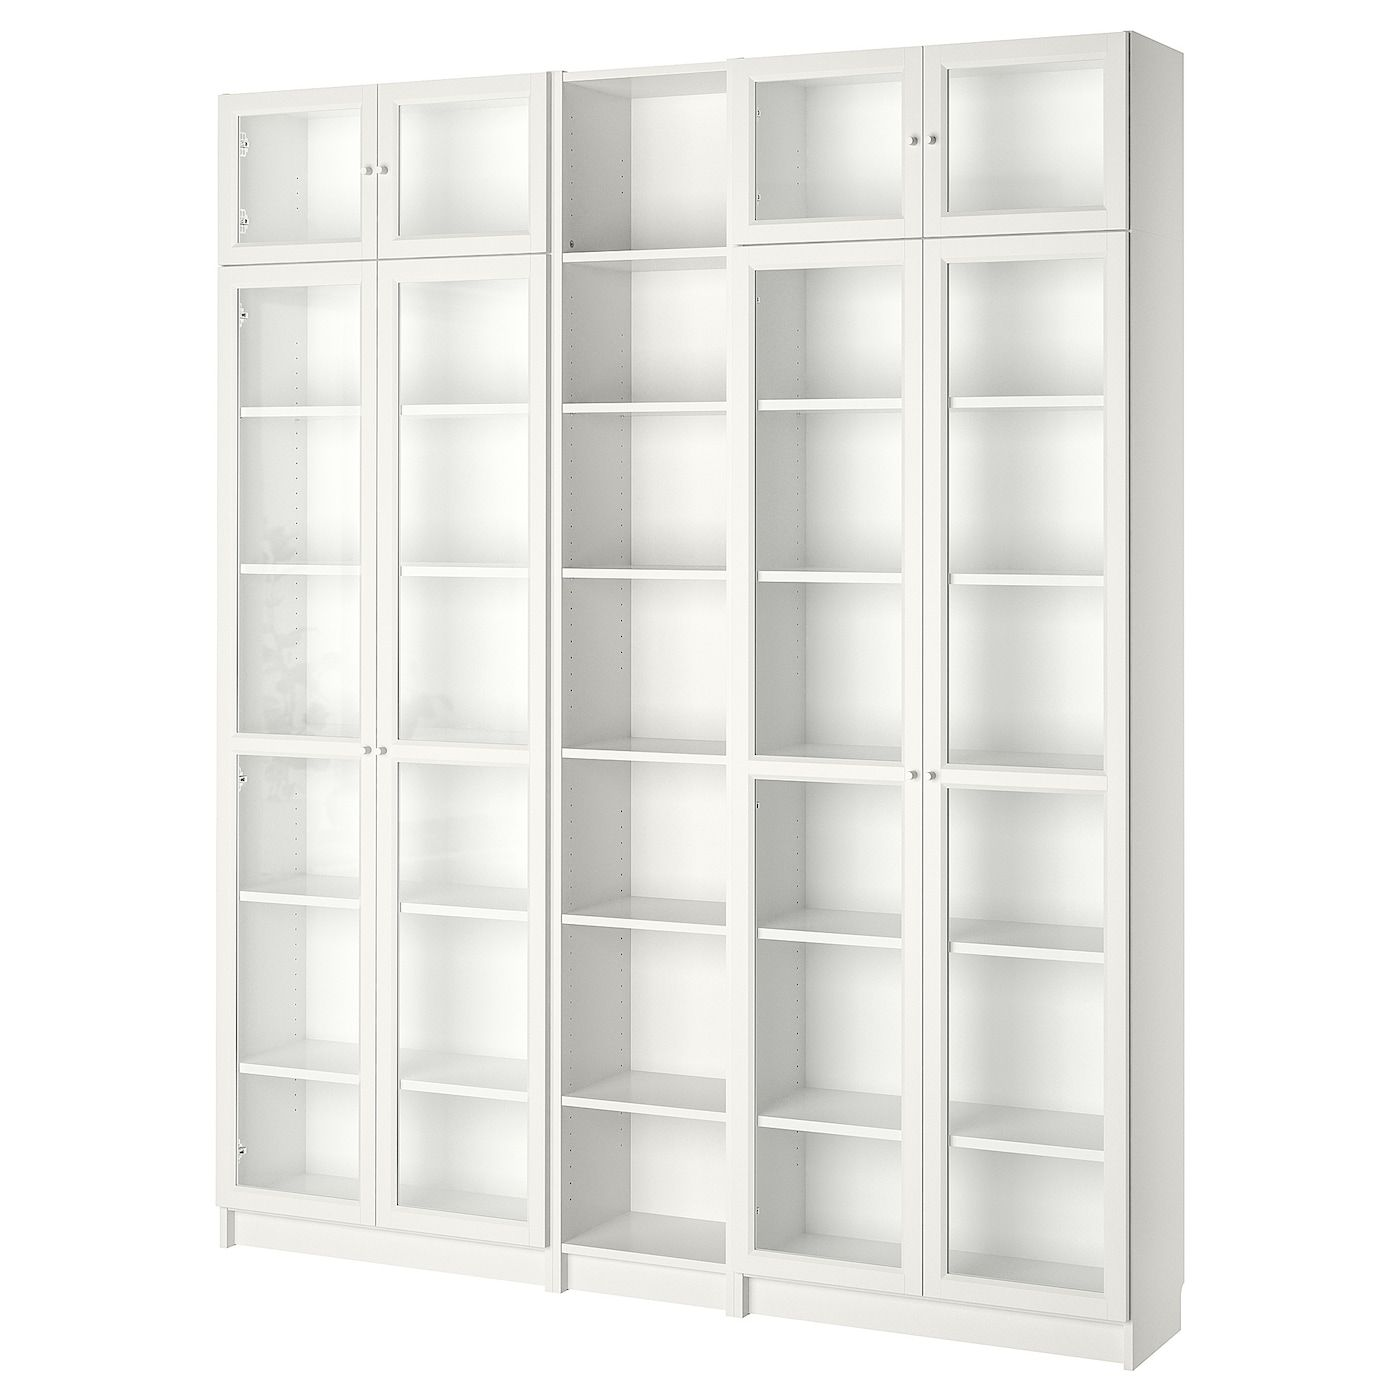 Billy Oxberg Bookcase White 78 3 4x11 3 4x93 1 4 Bookcase With Glass Doors White Bookcase Billy Bookcase